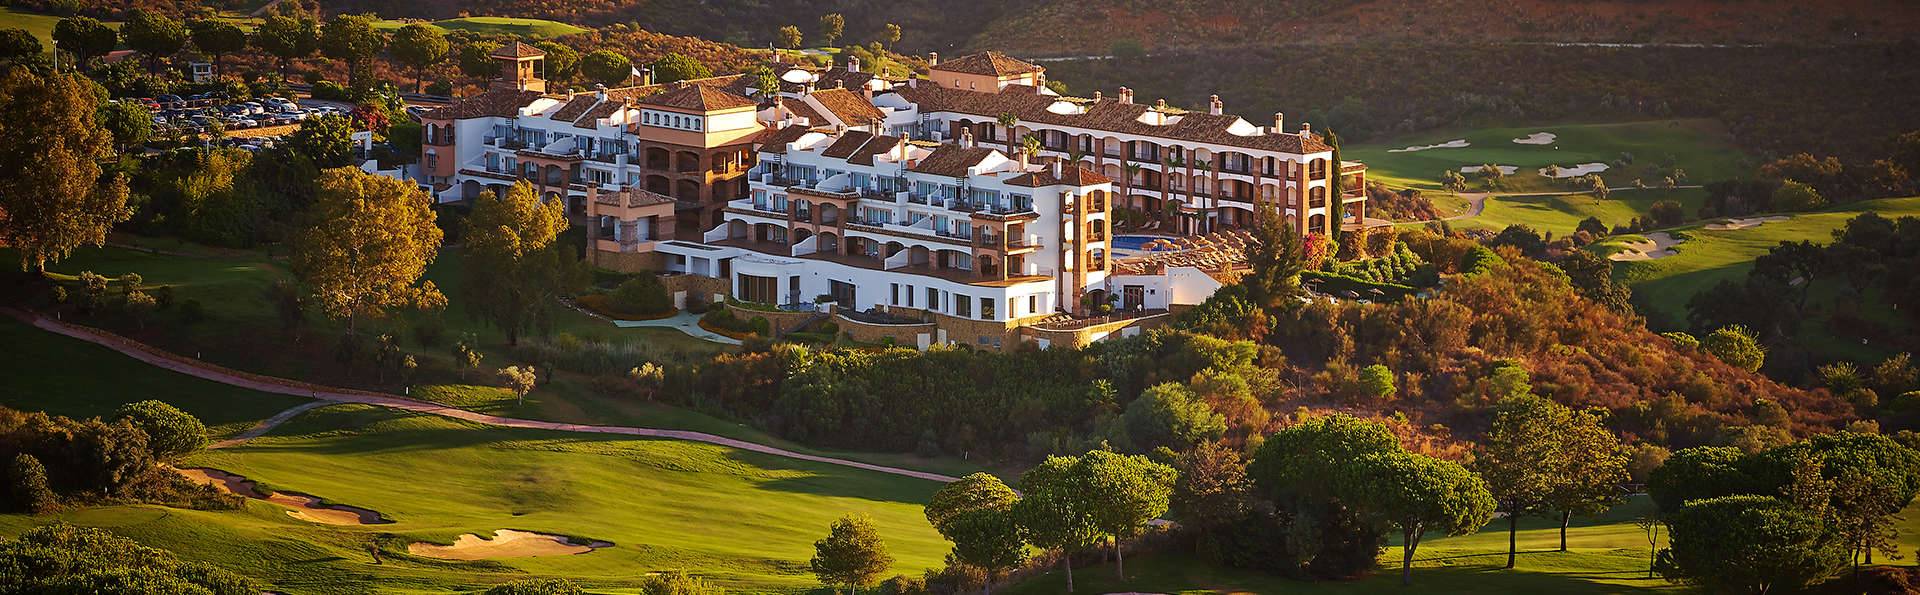 La Cala Resort Hotel - EDIT_NEW_VIEW2.jpg